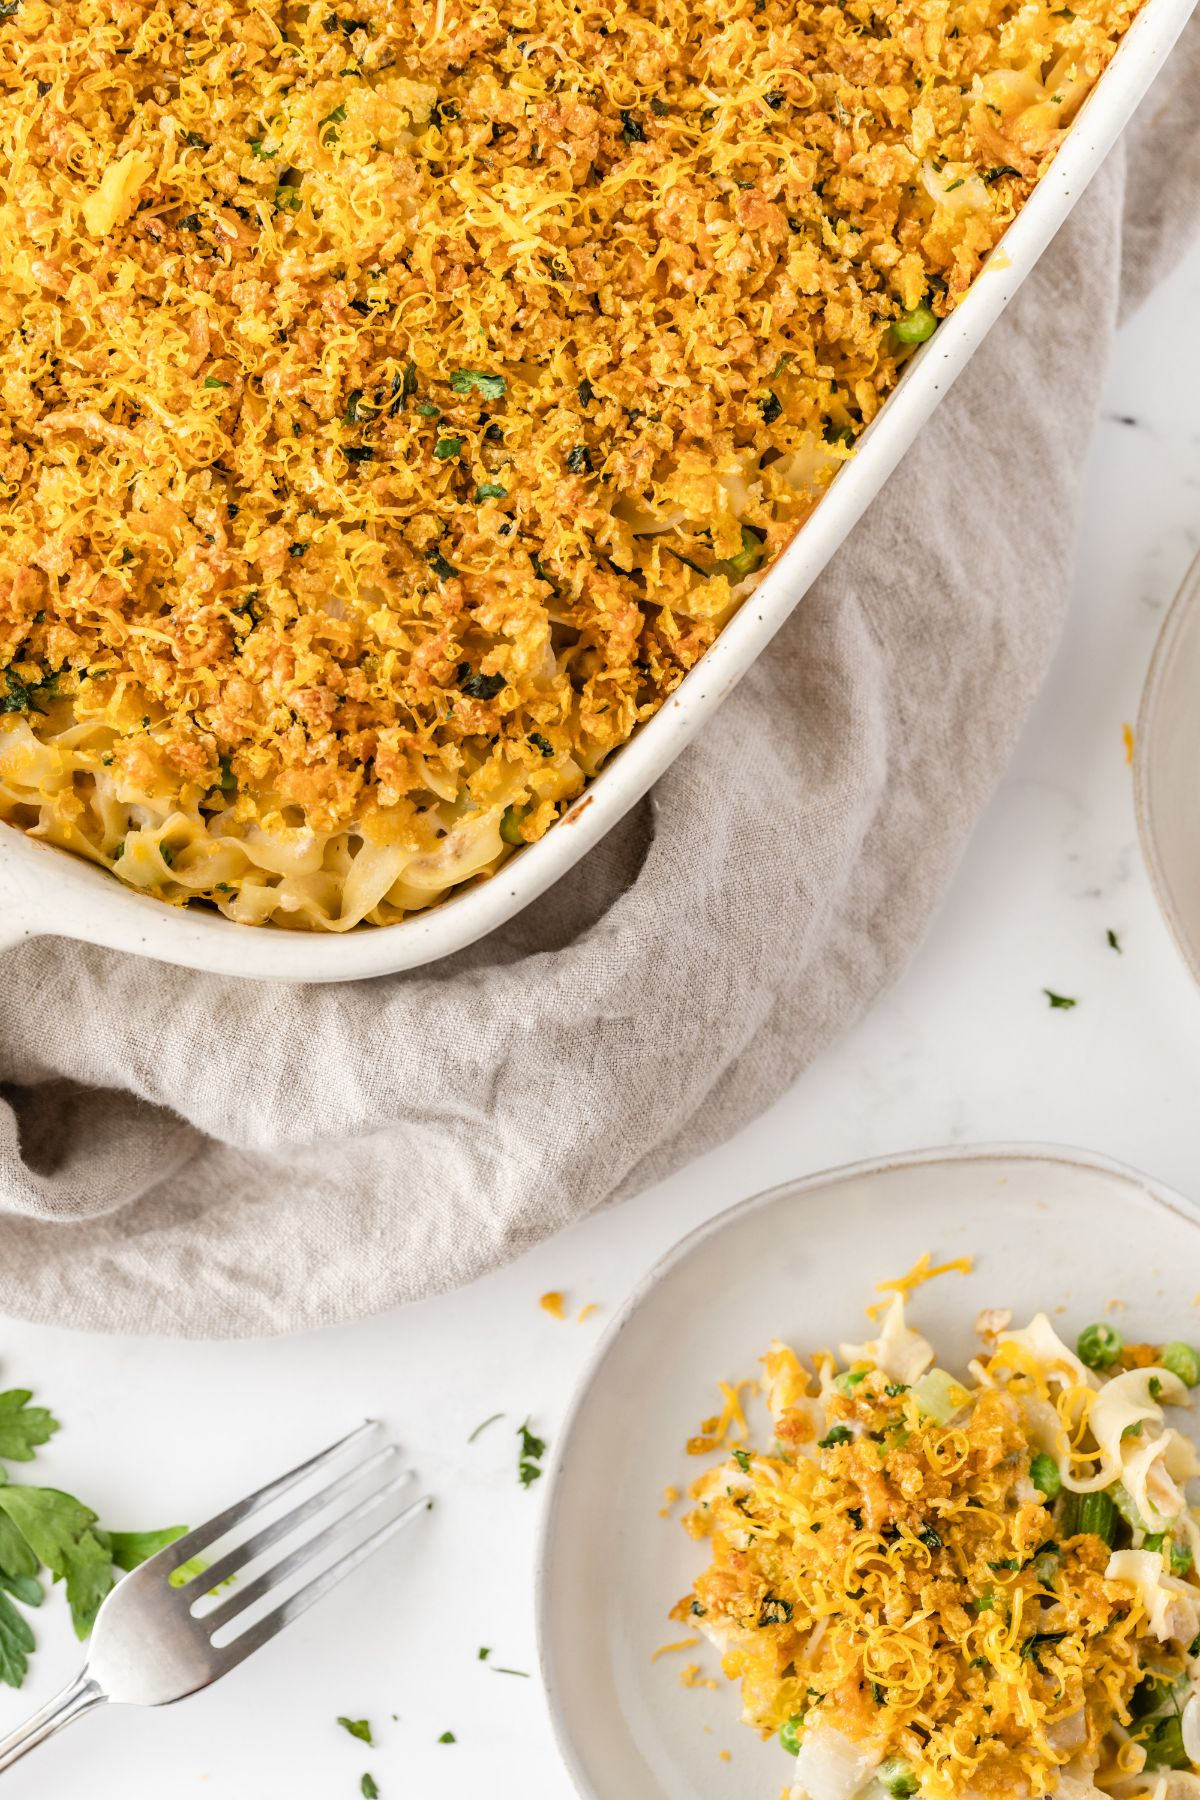 A vertical image showing a part of the tuna noodle casserole in the upper left corner and a small serving on a white plate in the lower right corner.